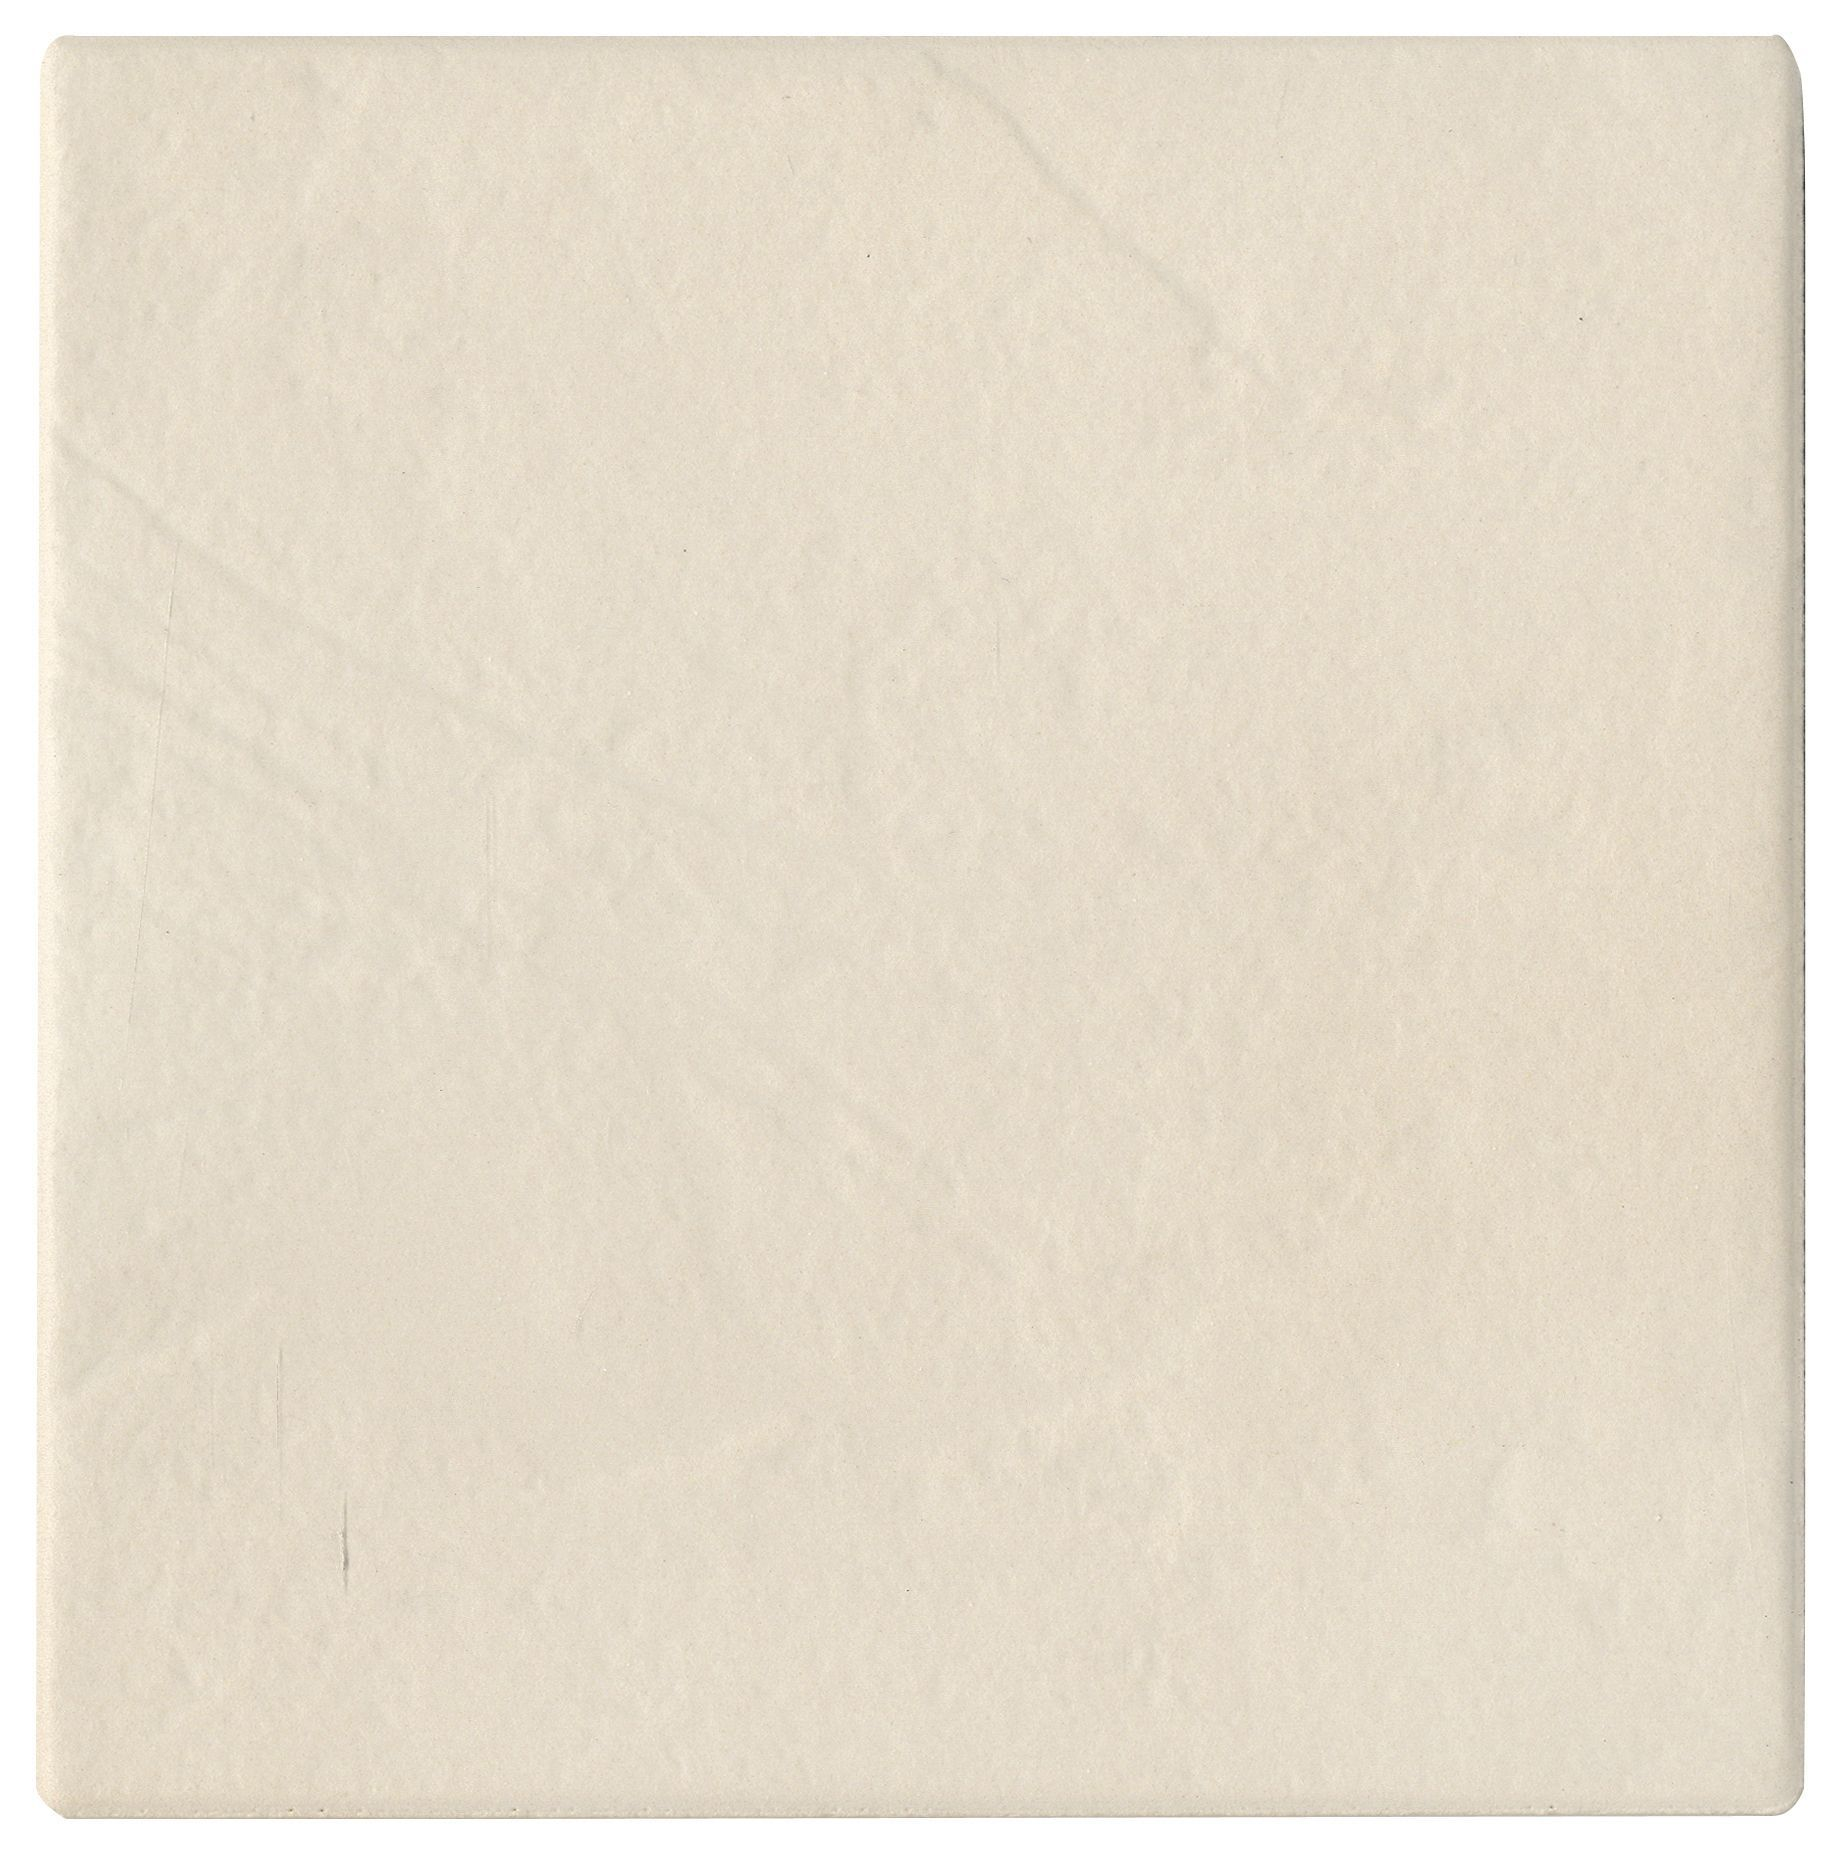 Stoneworks marfil stone effect ceramic wall tile l152mm w stoneworks marfil stone effect ceramic wall tile l152mm w152mm departments diy at bq dailygadgetfo Images